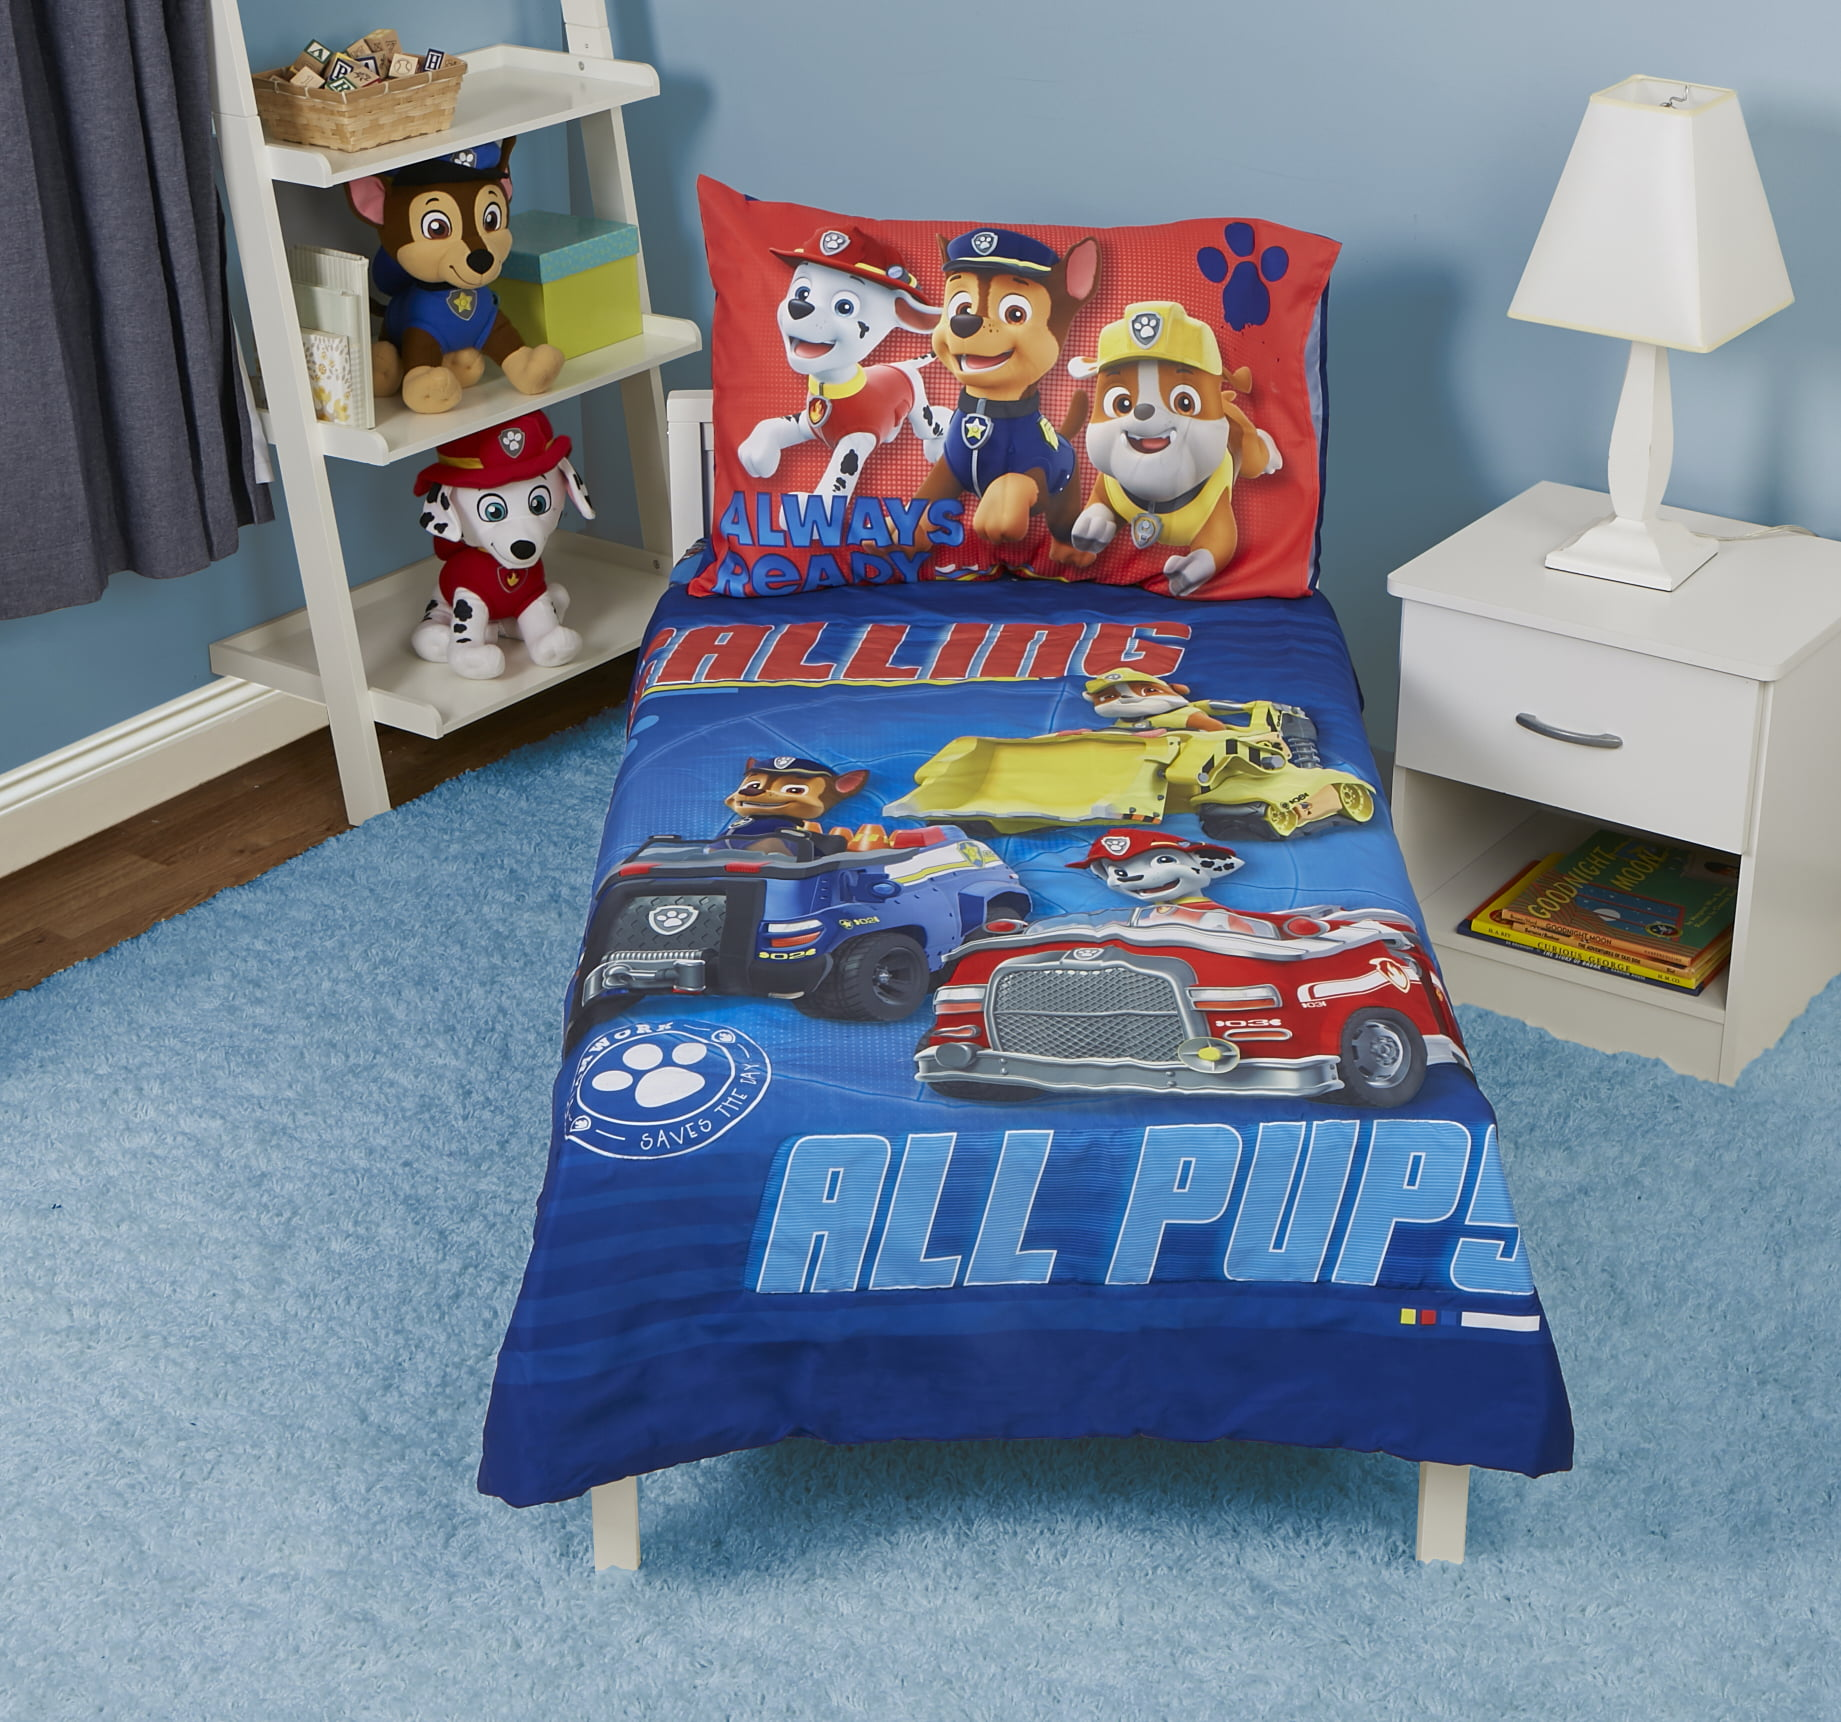 Paw Patrol Lampshade Ideal To Match Paw Patrol Wallpaper Paw Patrol Duvet Covers